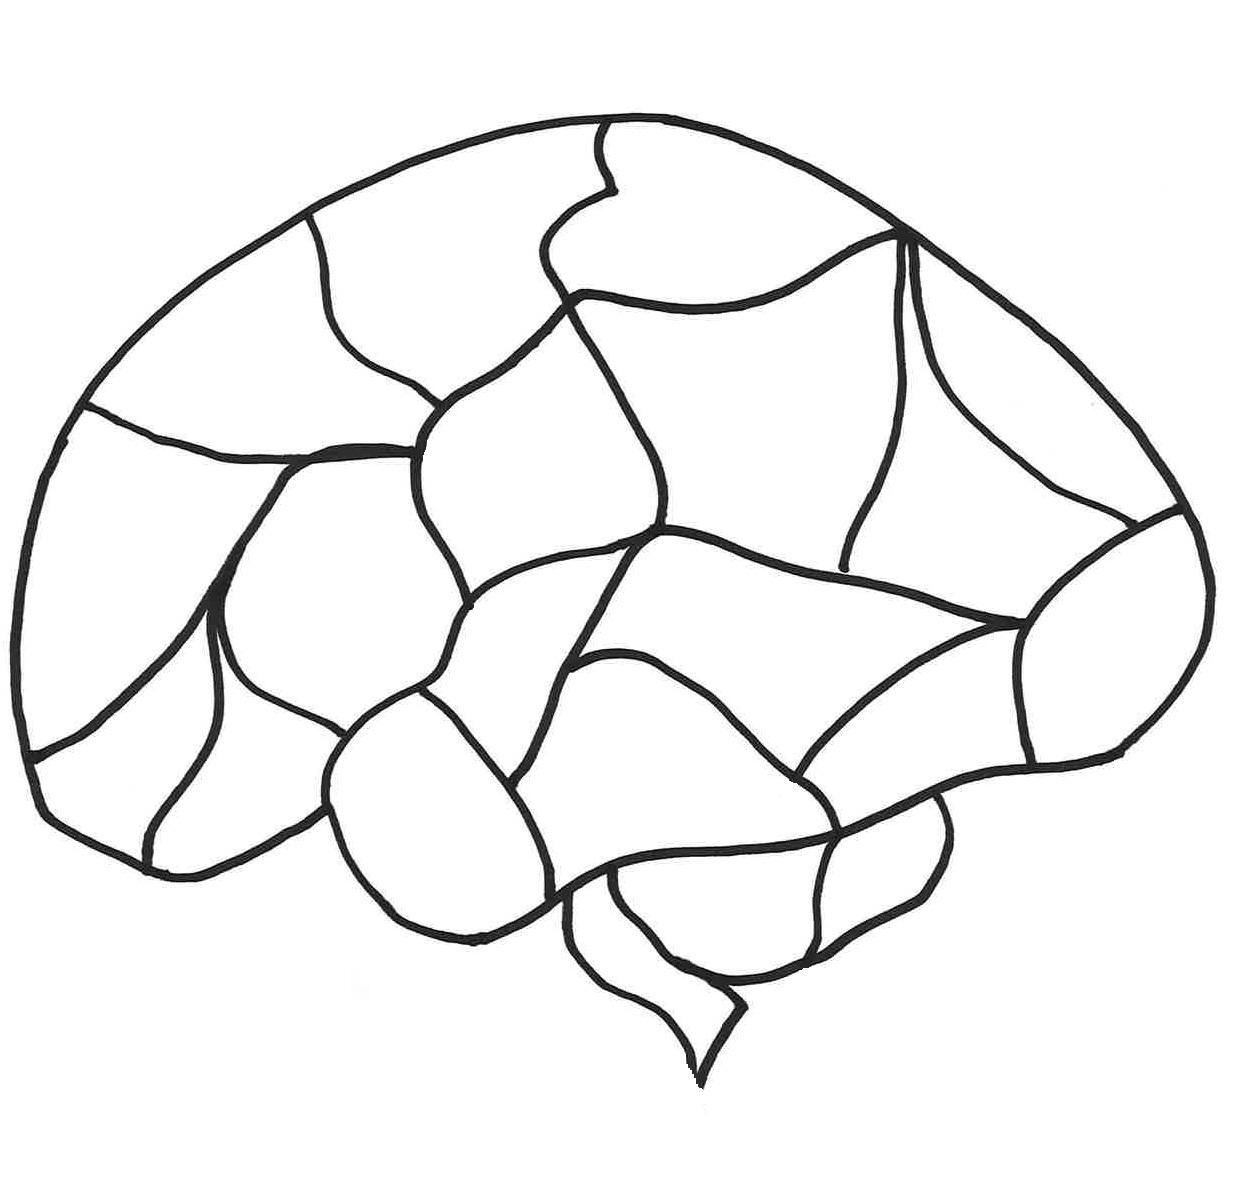 Blank Brain Template With Images